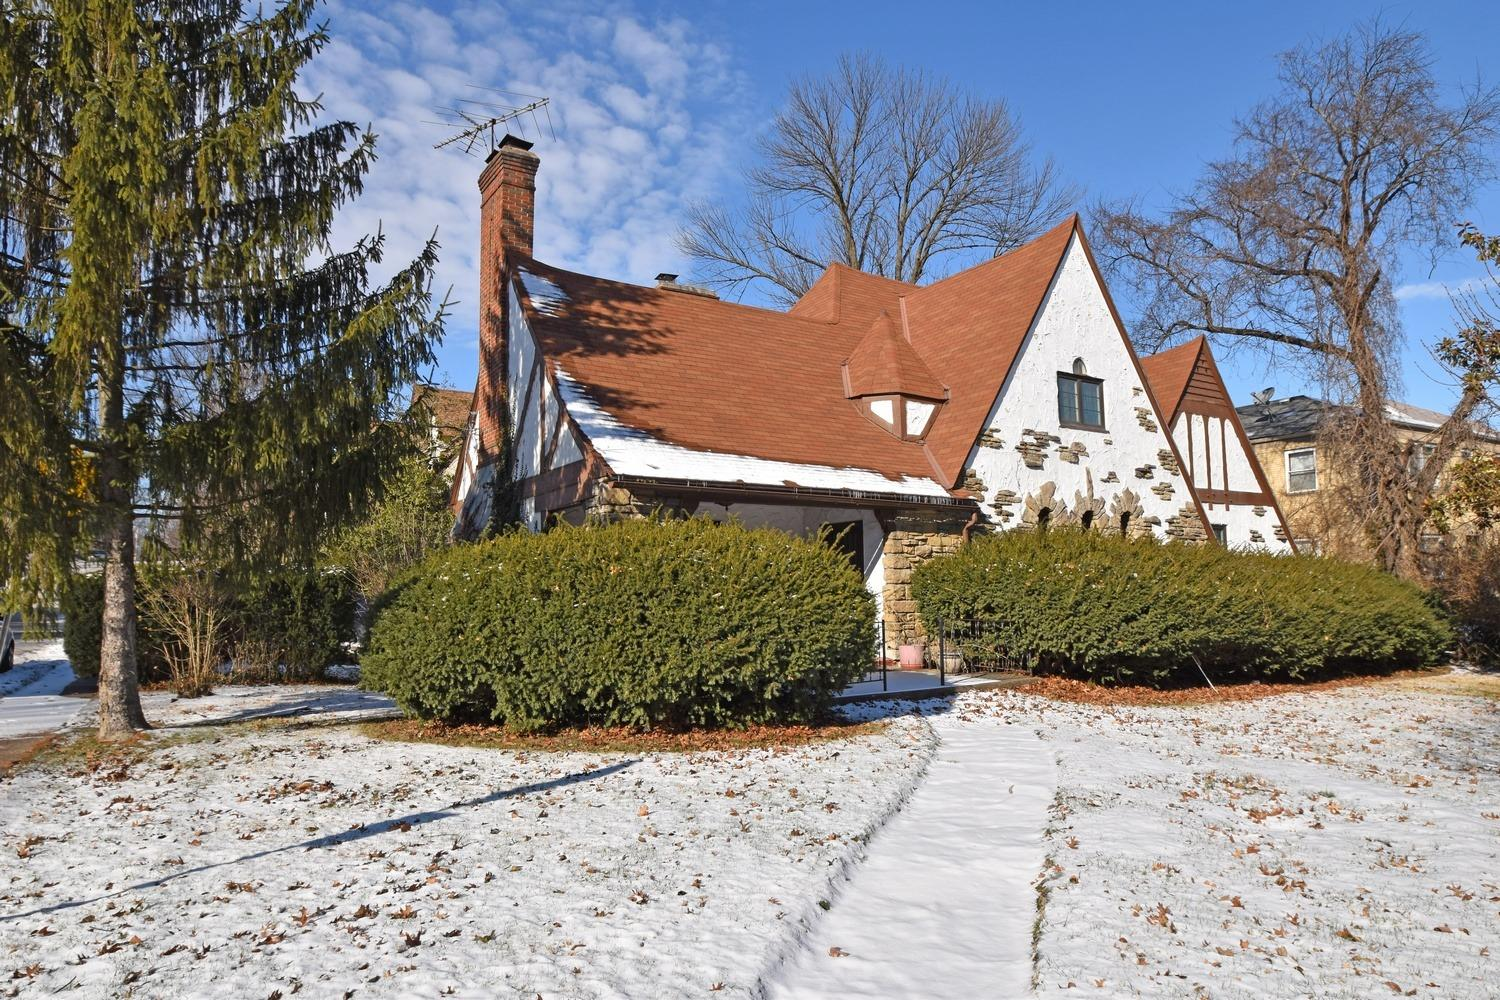 This tudor with today's flr plan is waiting for your personal touch.Entry of this spacious Paddock Hills home opens to LR with vaulted ceiling & view 2nd flr.Located near Avon Fields Golf Course & Avon Nature Center.Water heater,AC & Air Handler '17.